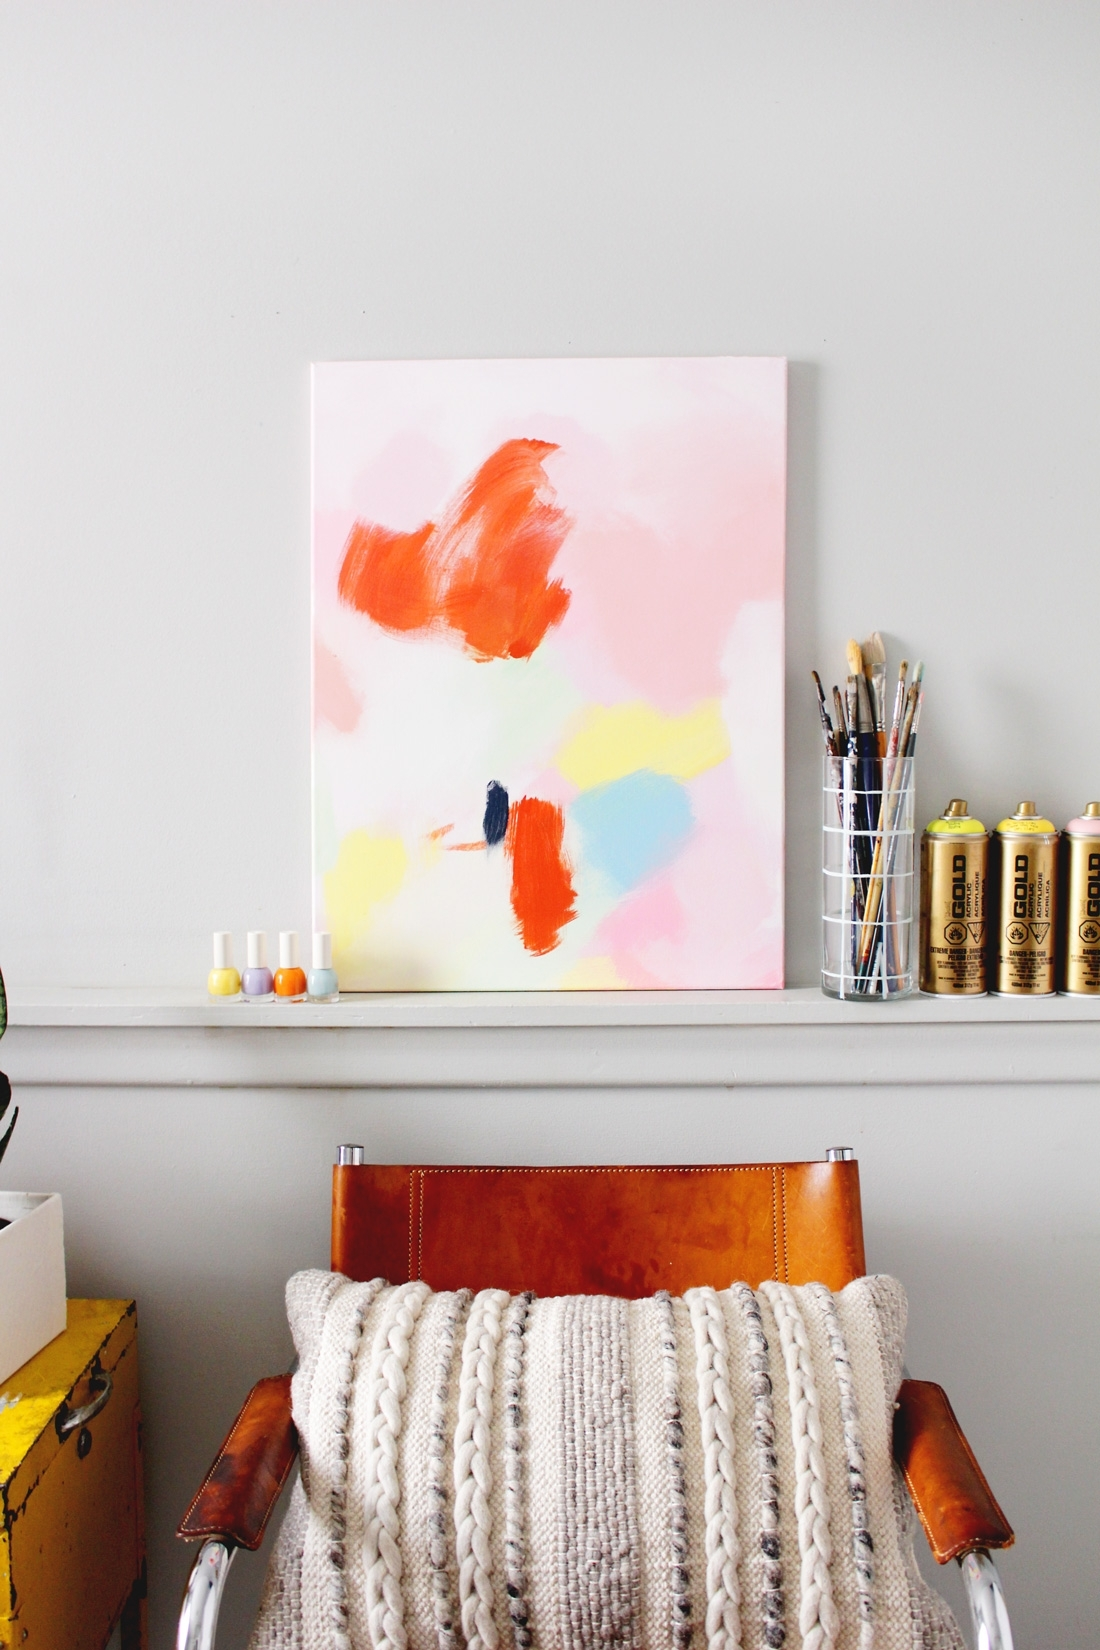 Diy Anthropologie Acrylic Wall Art On Brit + Co | Fish & Bull For Most Recent Anthropologie Wall Art (Gallery 18 of 20)